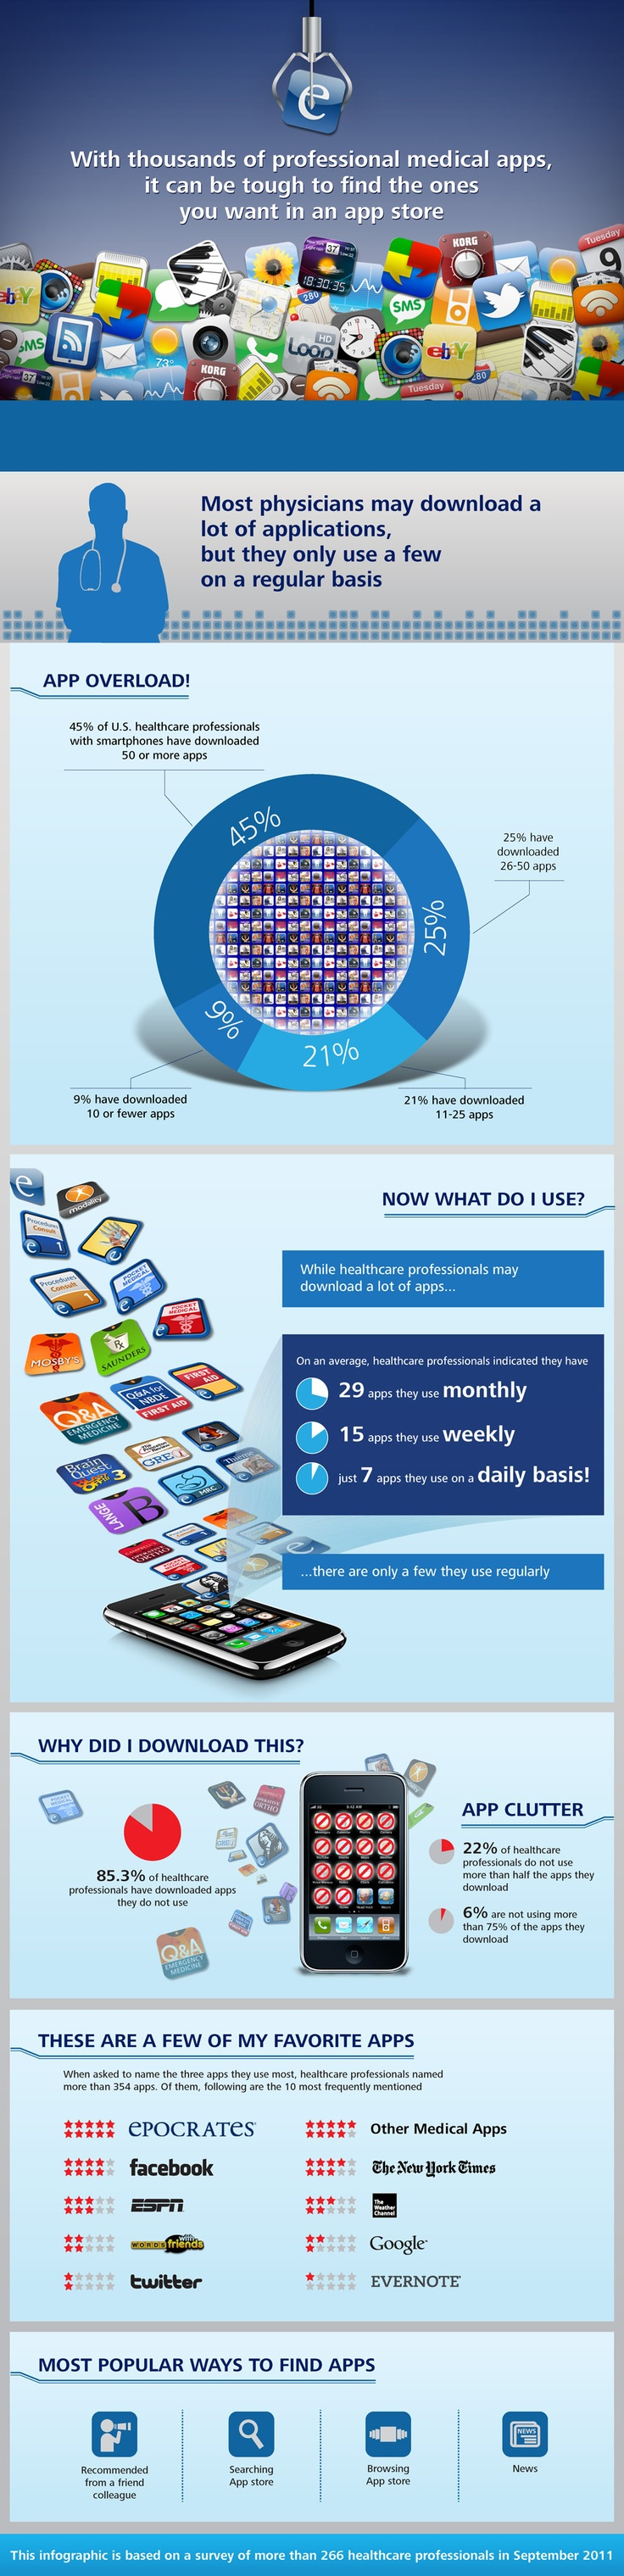 Healthcare Professionals and Apps (by ePocrates) [infographic] #SXSH #SocPharm